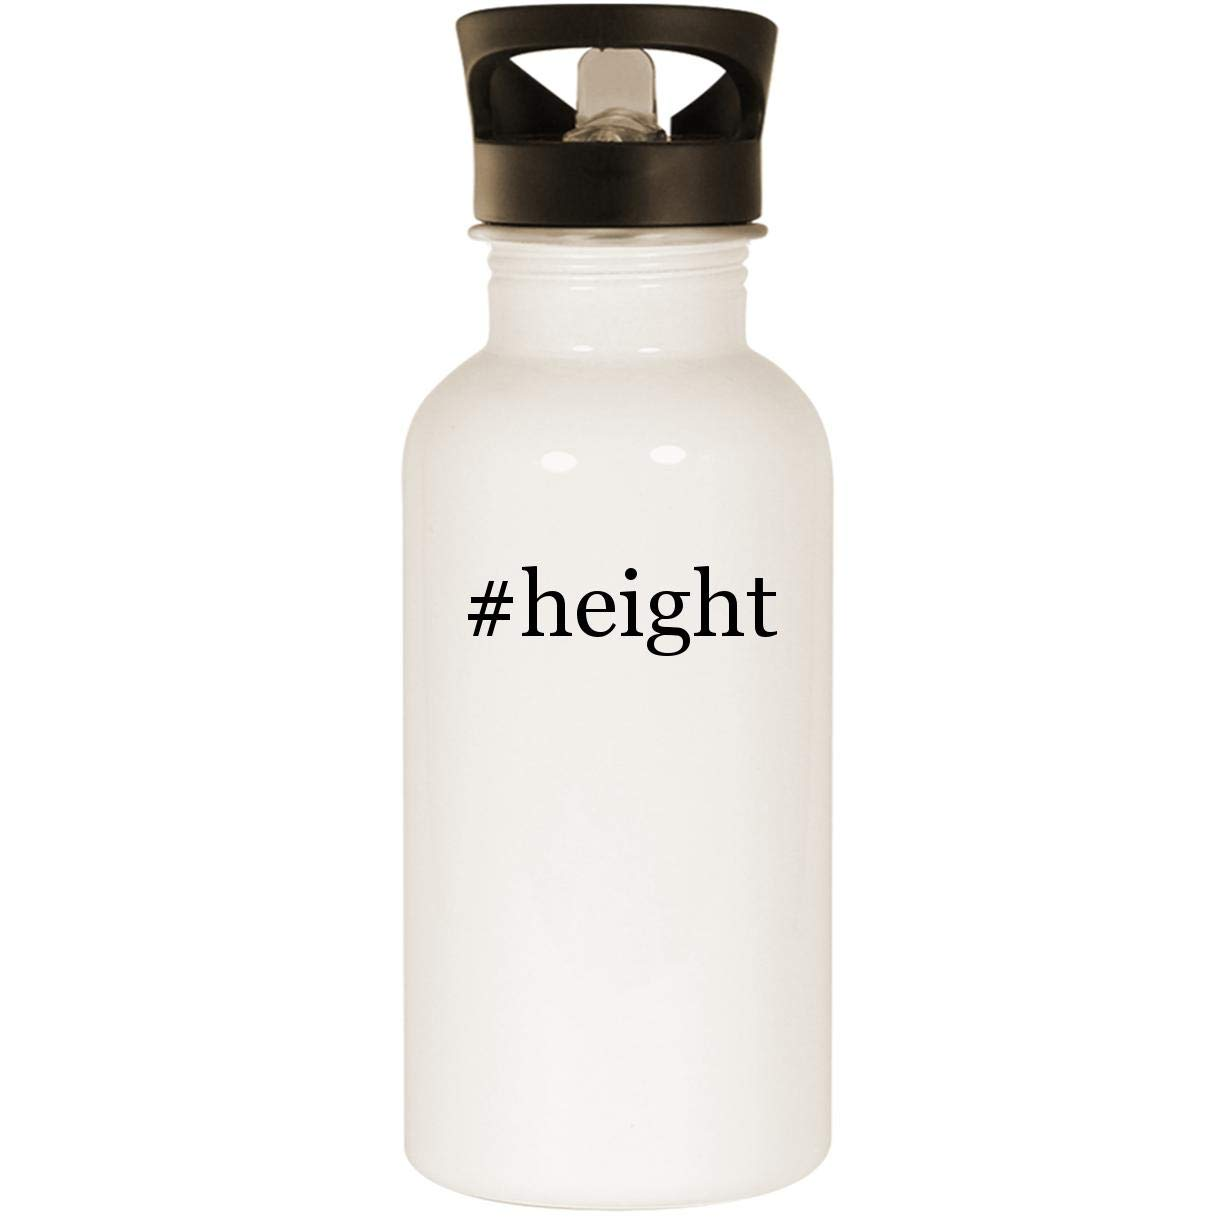 #height - Stainless Steel 20oz Road Ready Water Bottle, White